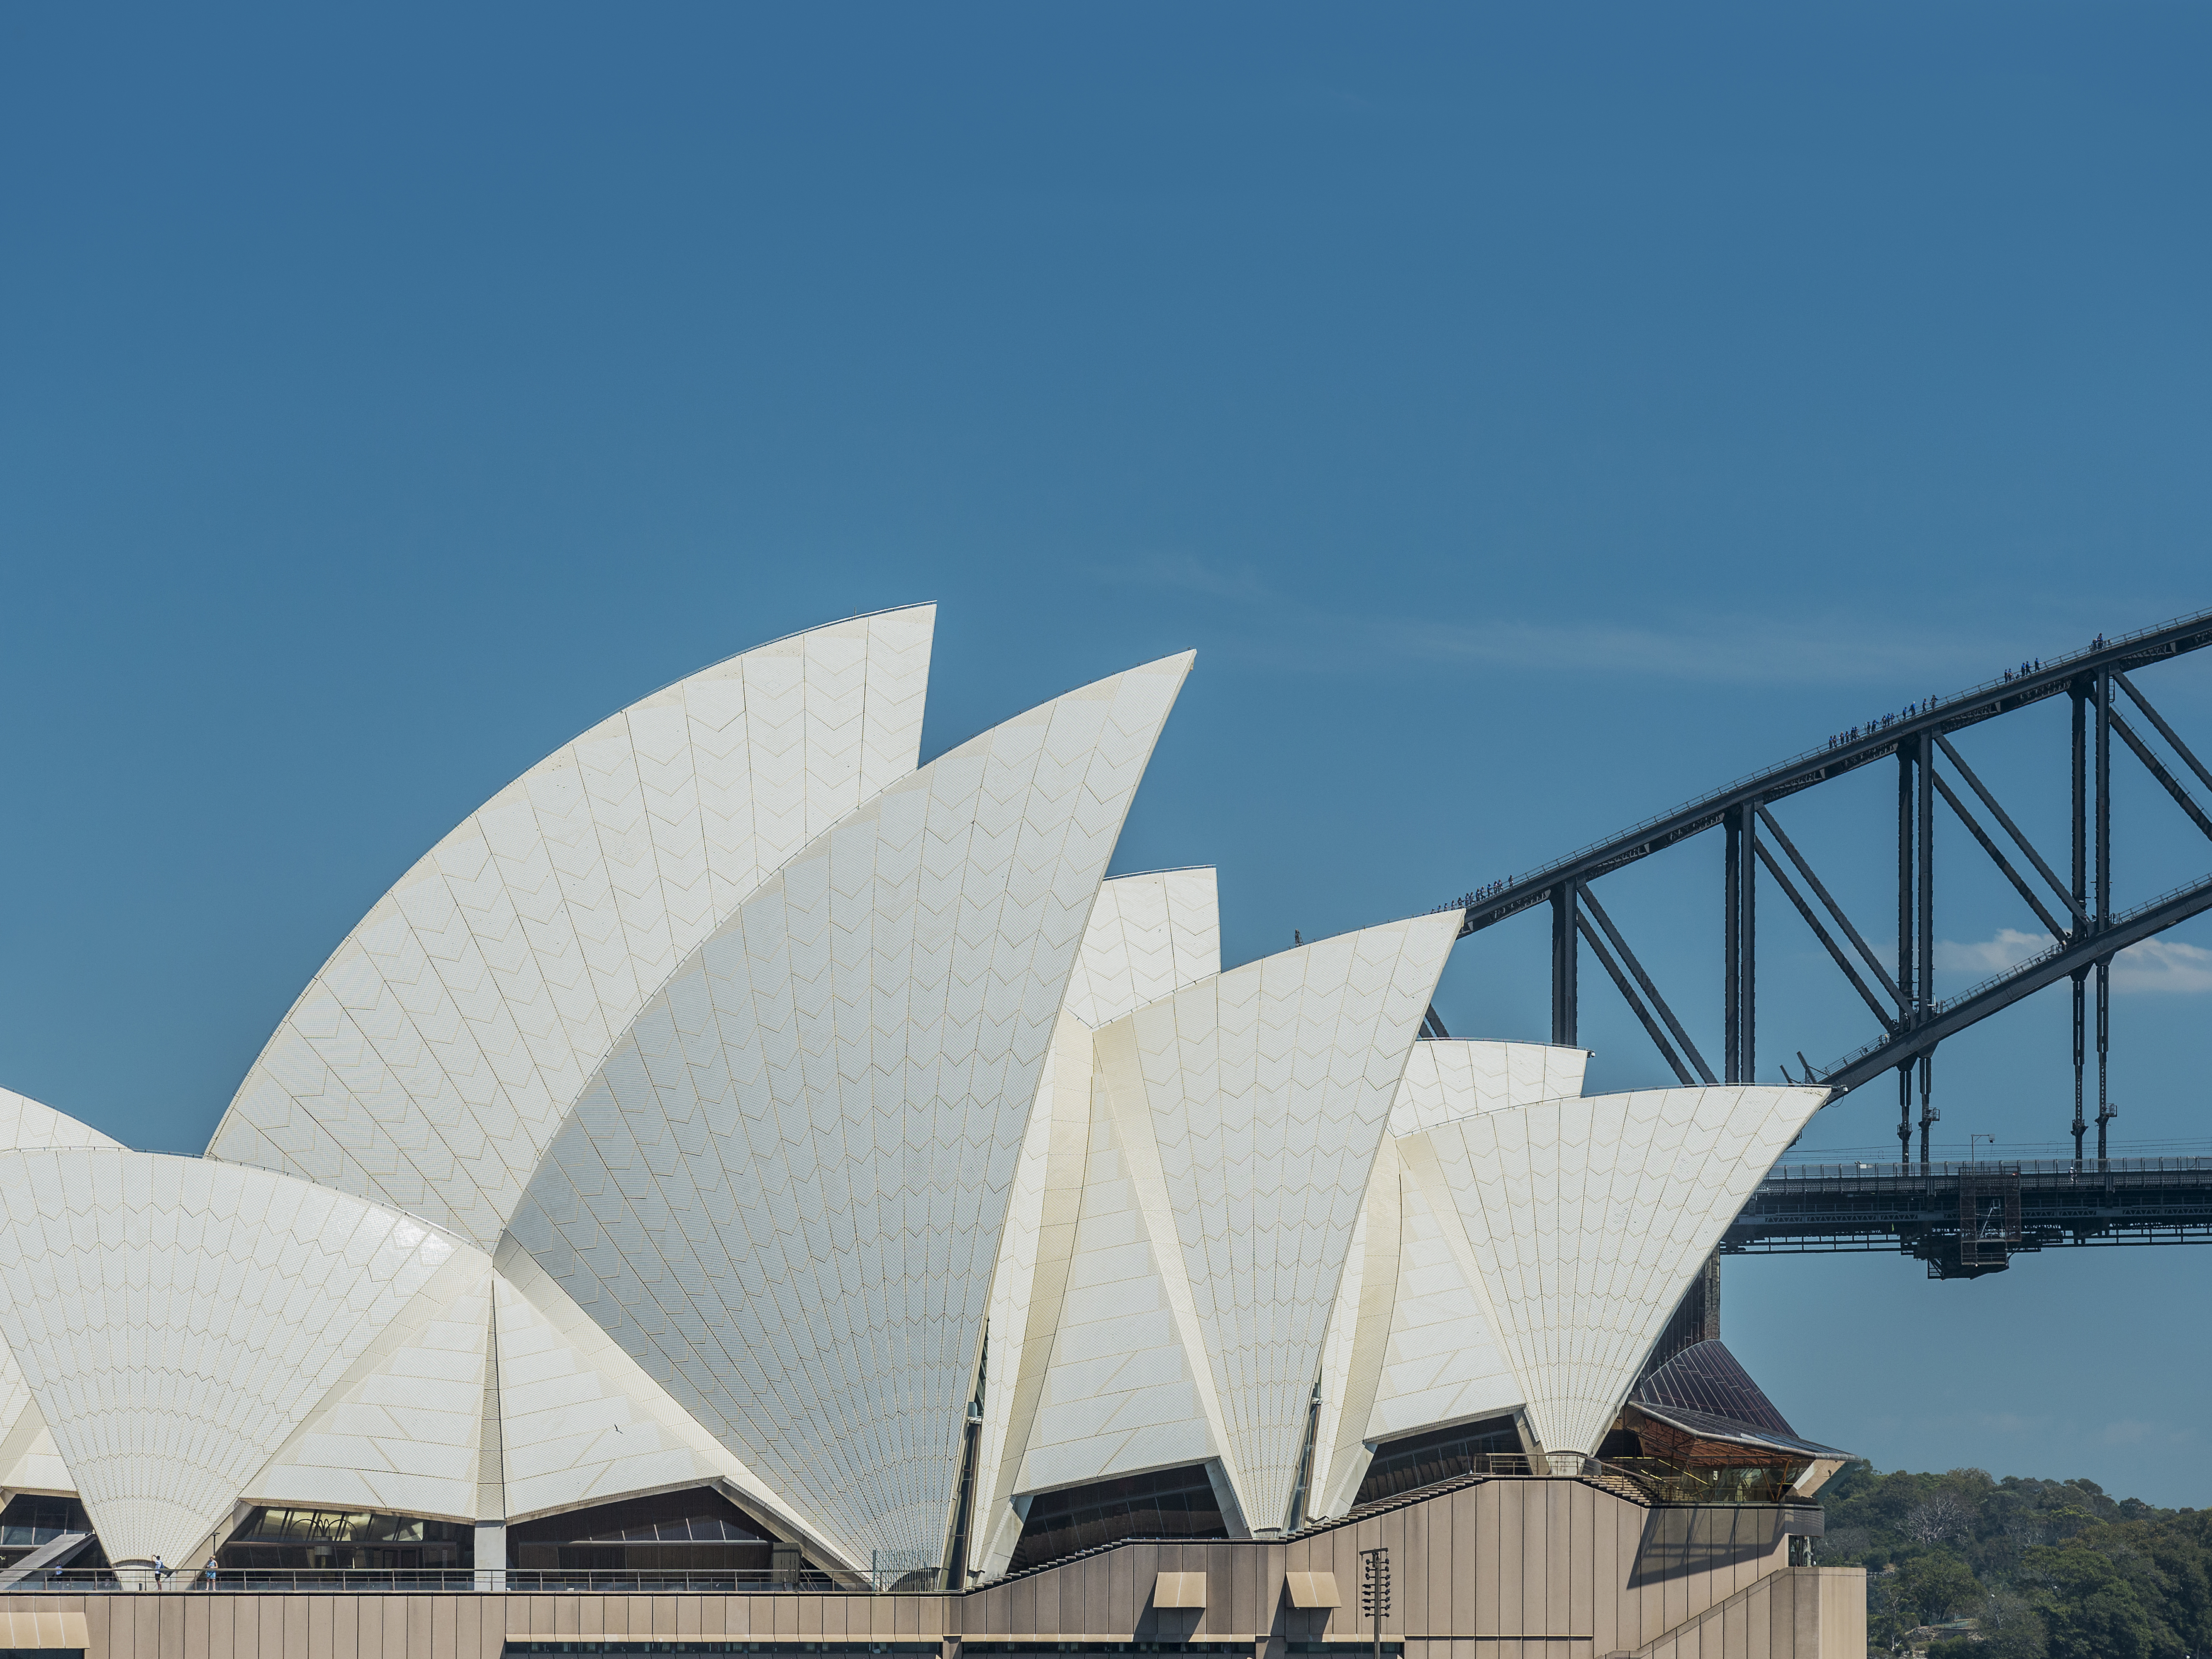 The Architects Registration Board (ARB) of NSW has launched the theme of this year's Sydney Architecture Festival as 'What makes a building truly great?'  Image: Sydney Opera House (c) Hamilton Lund courtesy of Sydney Opera House Trust